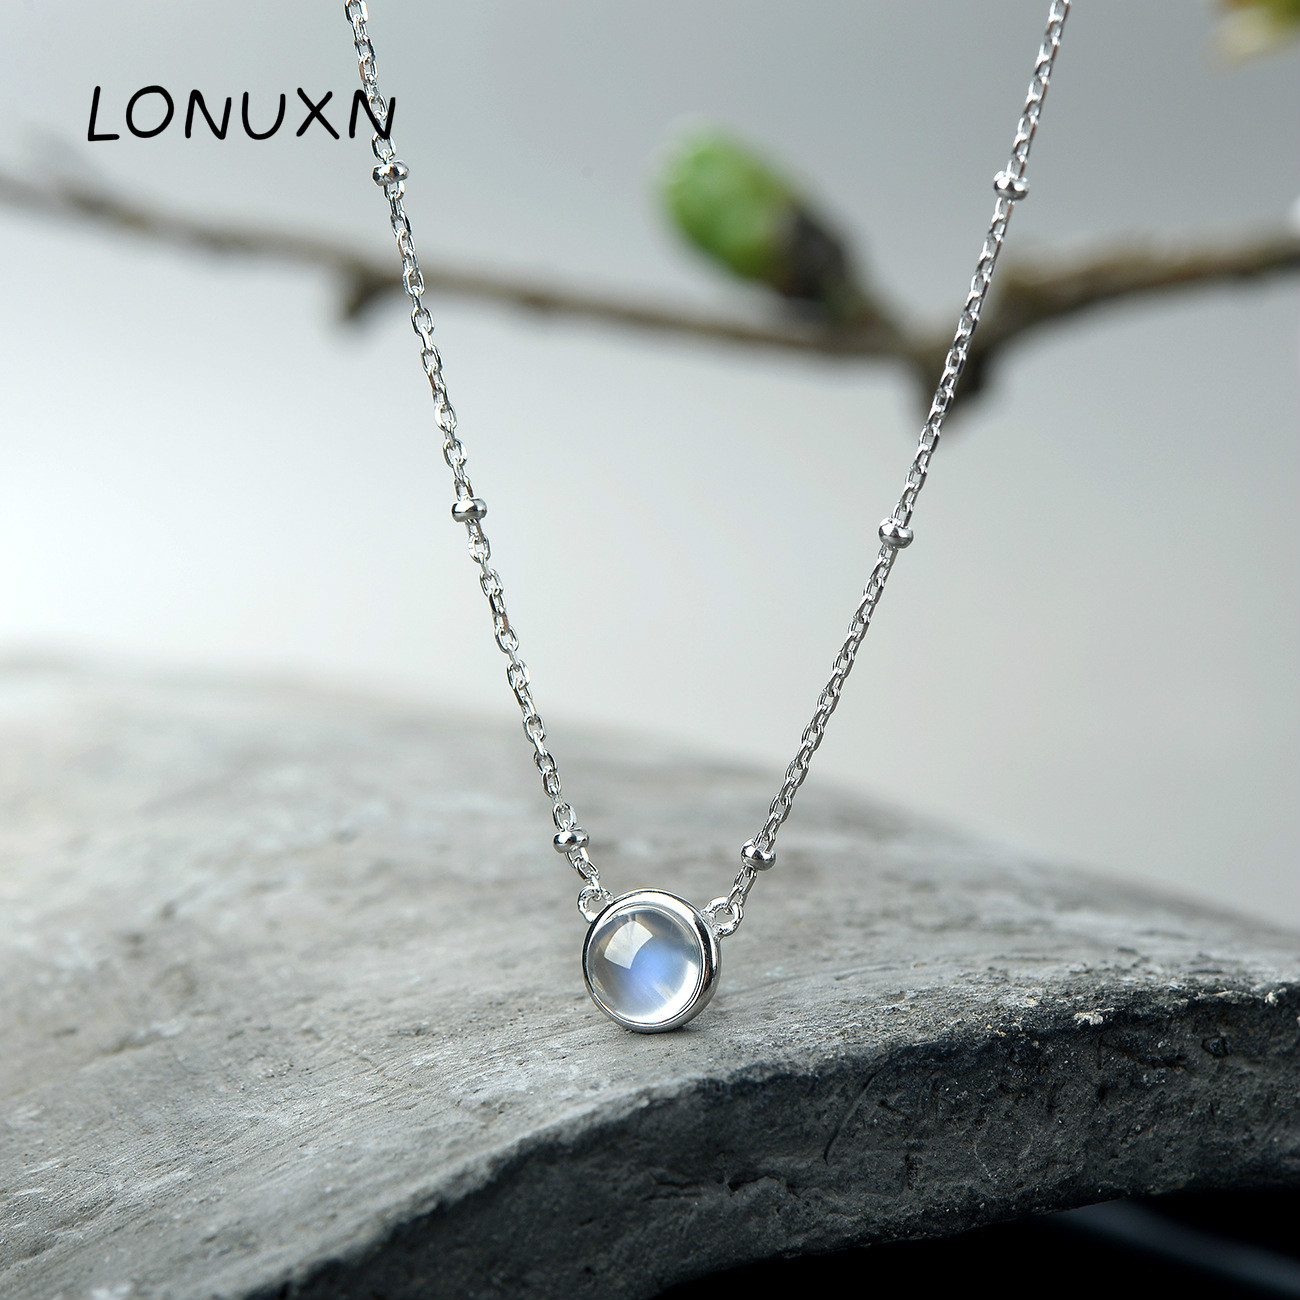 2018 New 925 Sterling Silver Round Natural Moonstone Necklace High Quality Women Jewelry Girls Pendant With Chain Lovers Gift